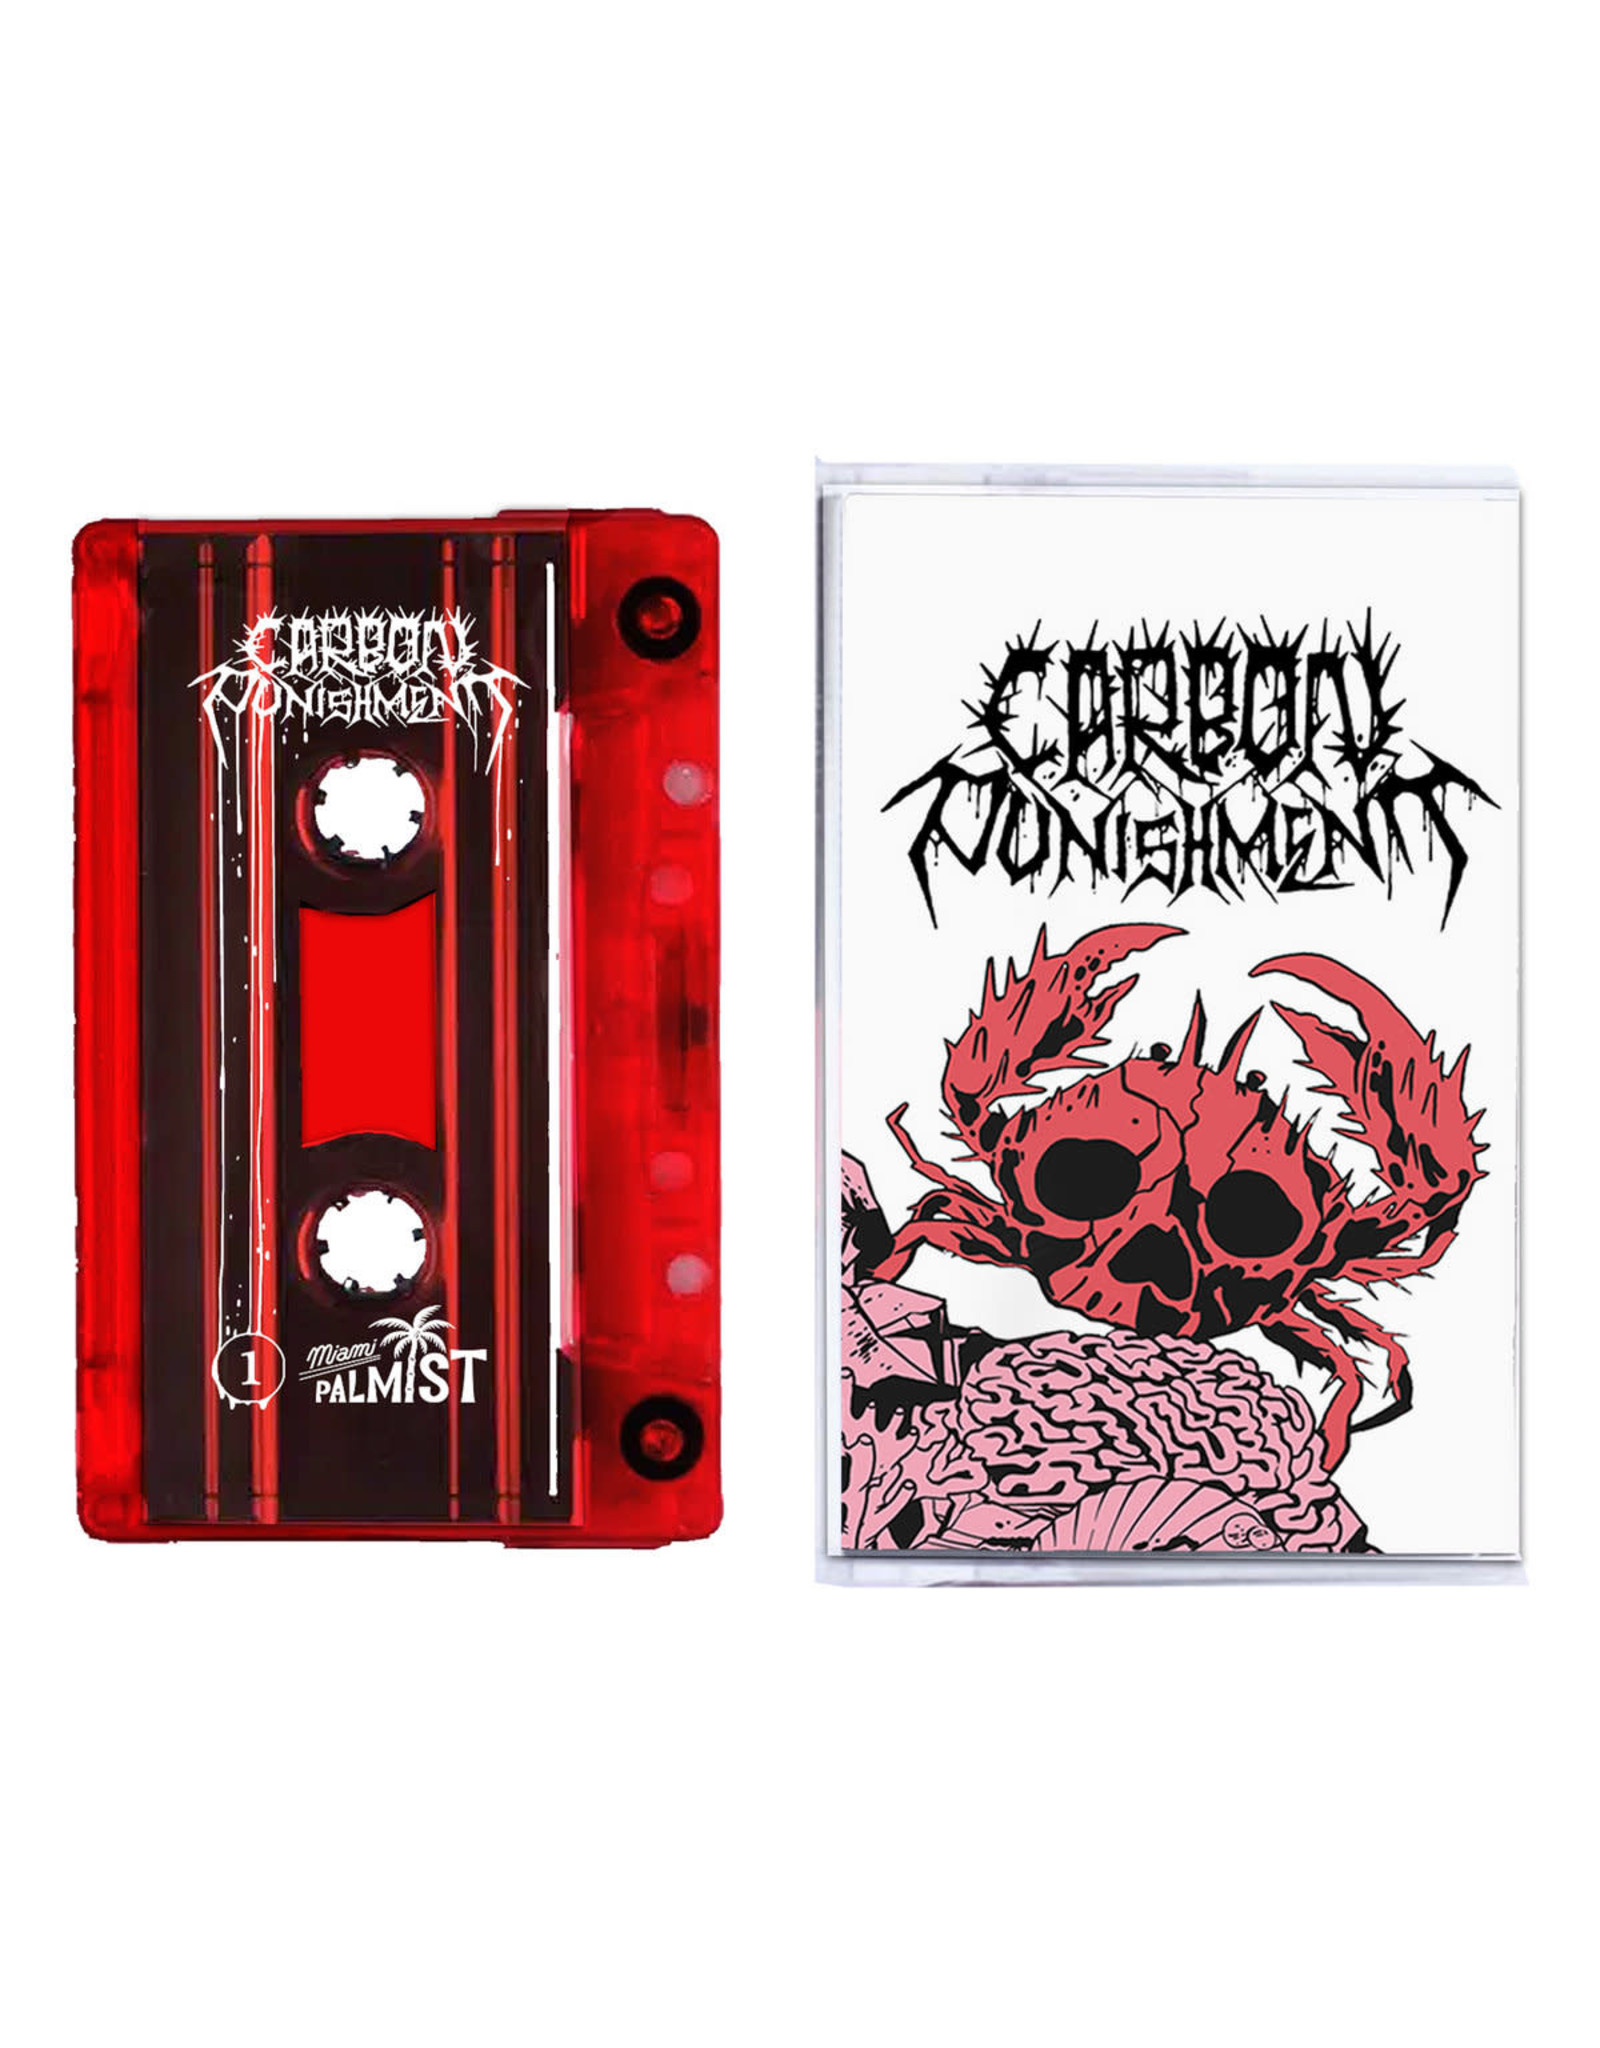 New Cassette Carbon Punishmnent - Ecological Collapse At Sea CS